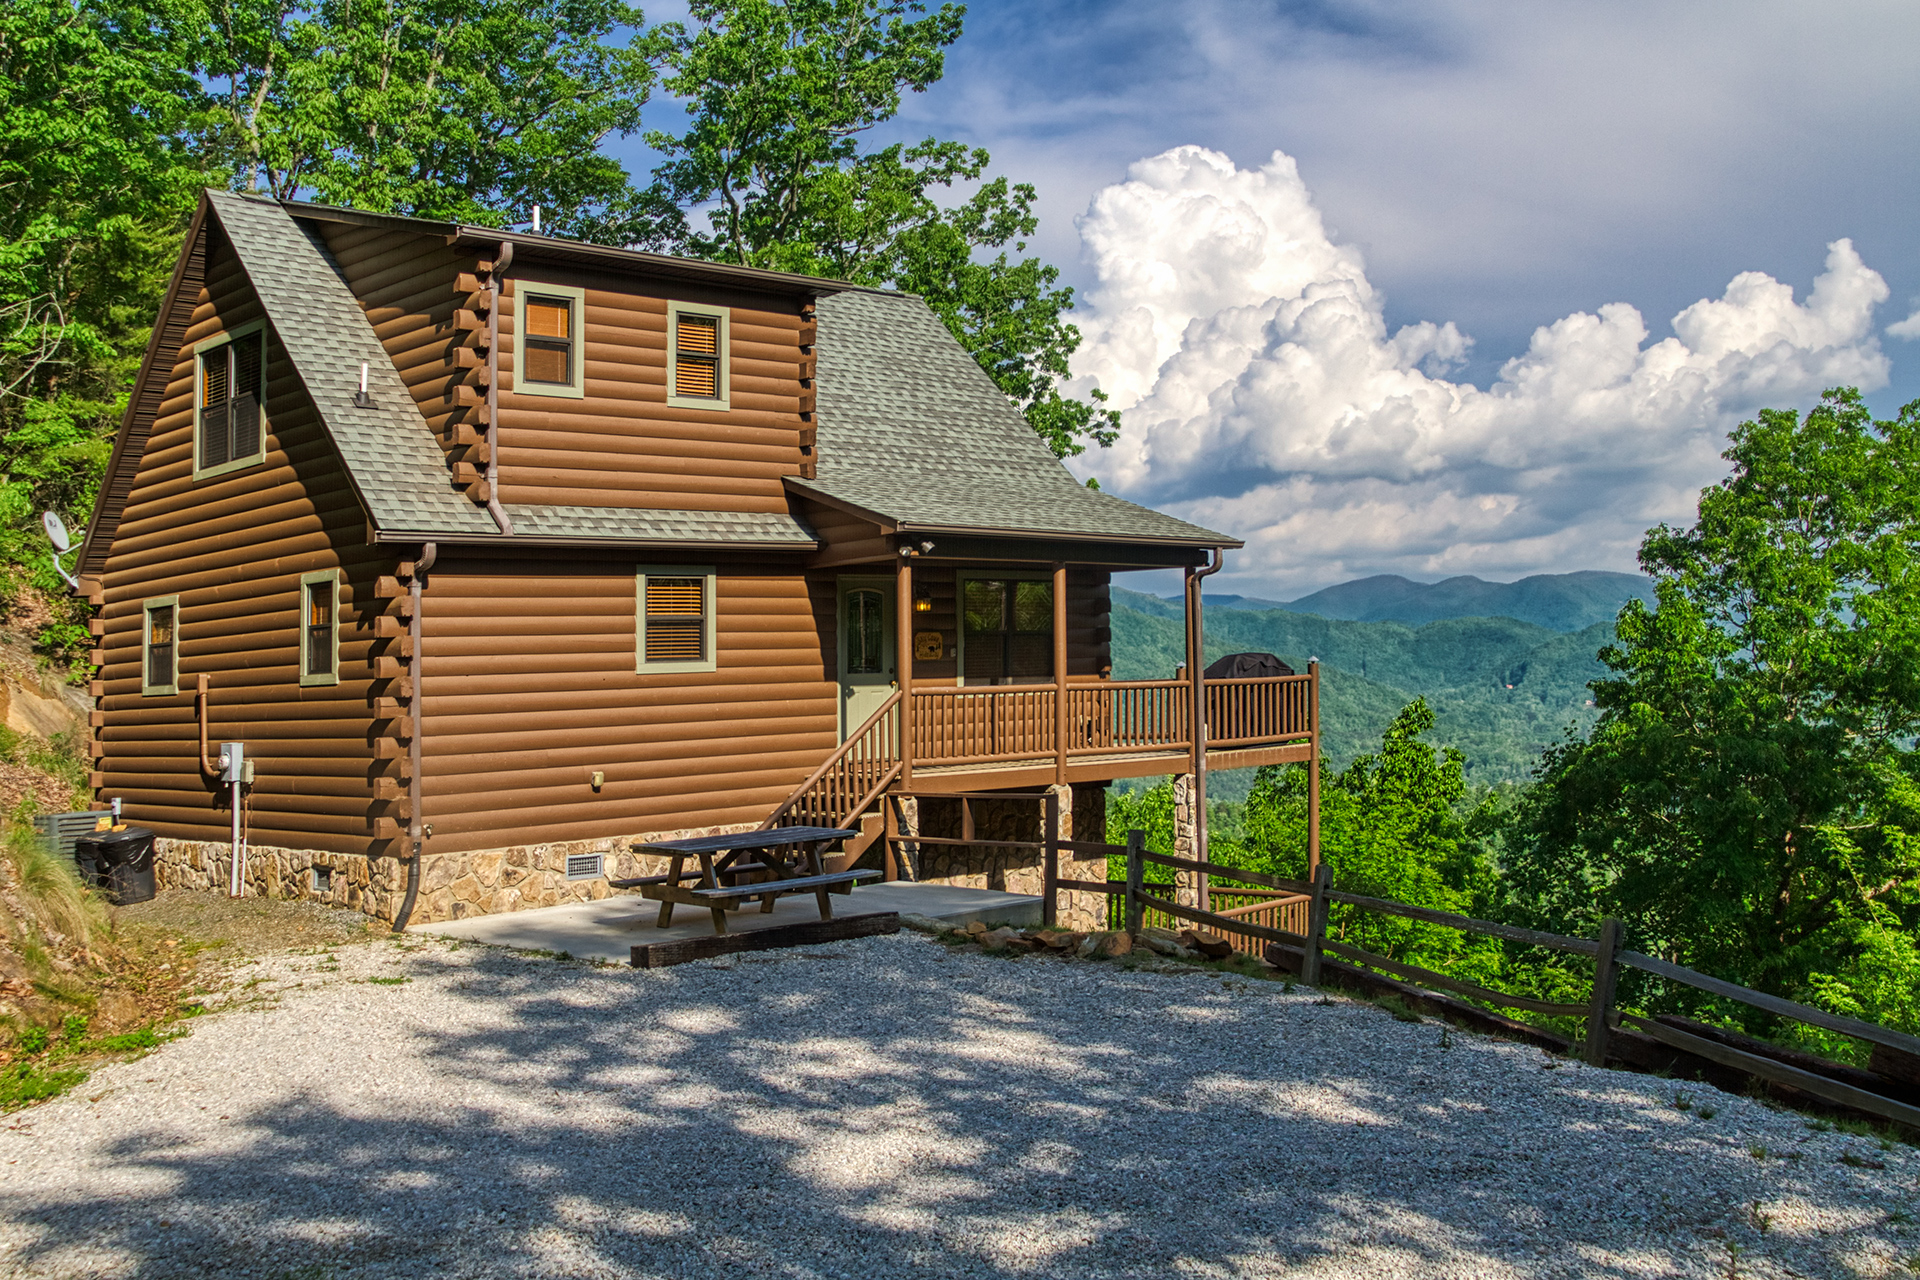 Winter View Of Sky Cove Hideaway Overlooking The Bryson City Mountains